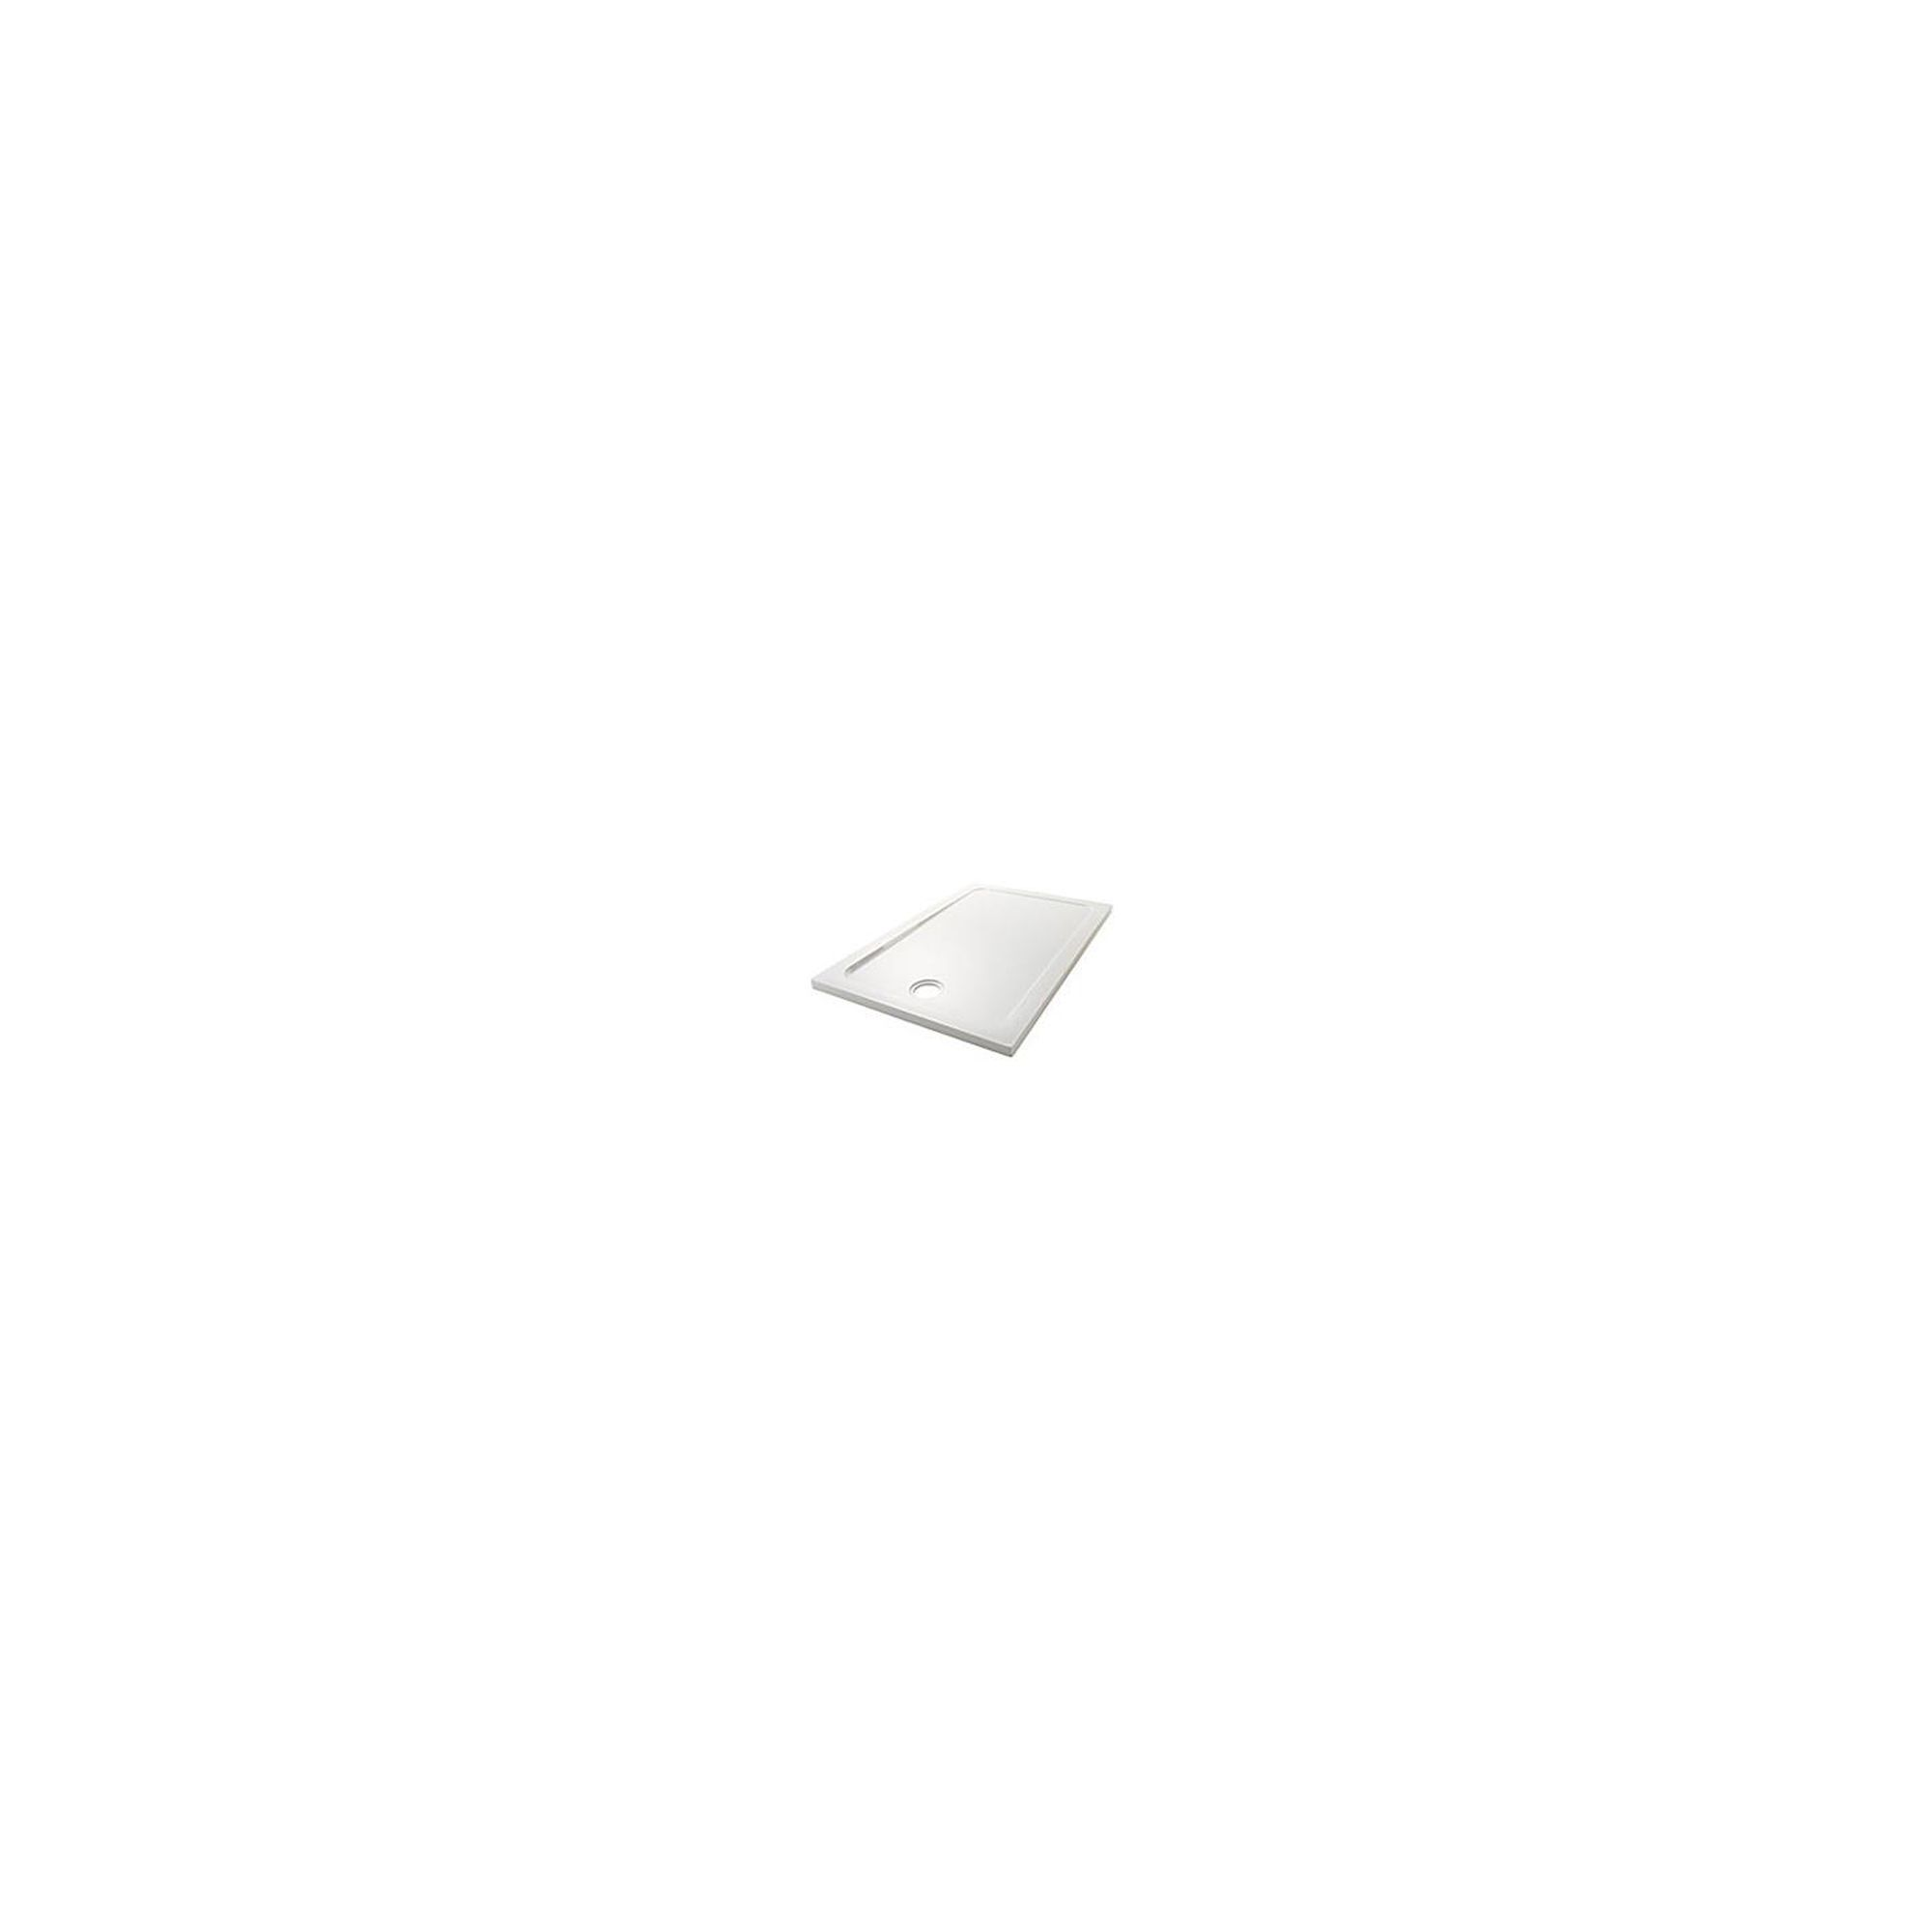 Mira Flight Low Profile Rectangular Shower Tray 1700mm x 760mm at Tescos Direct